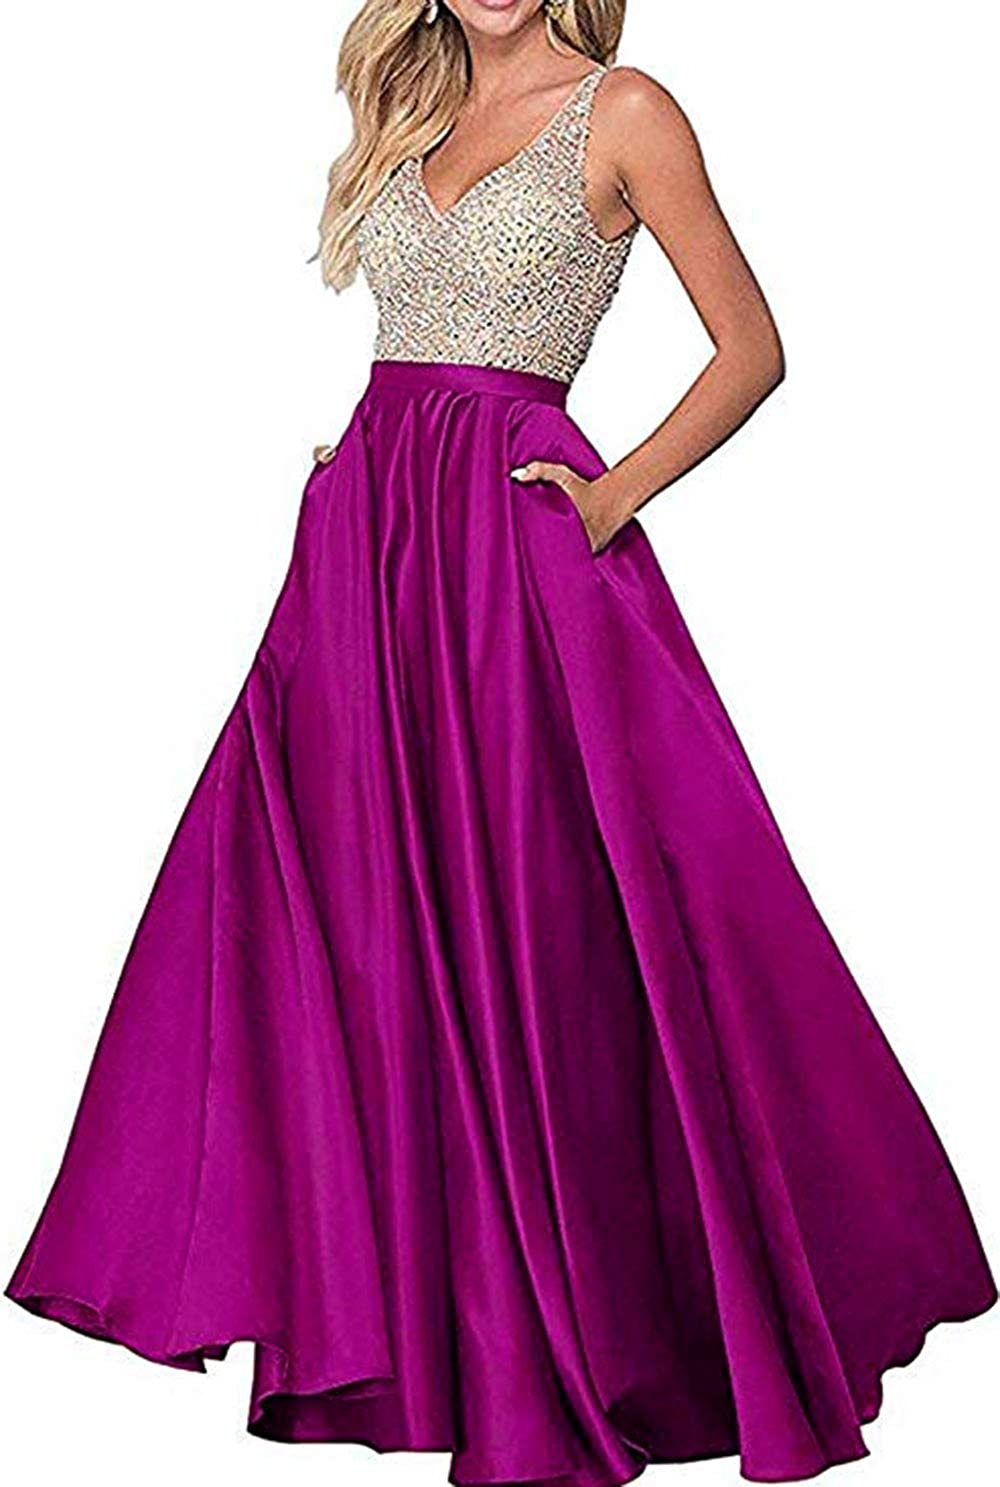 Fuchsia Rmaytiked Womens VNeck Beaded Bodice Long Prom Dresses A Line Satin Formal Evening Ball Gowns with Pockets 2019 New